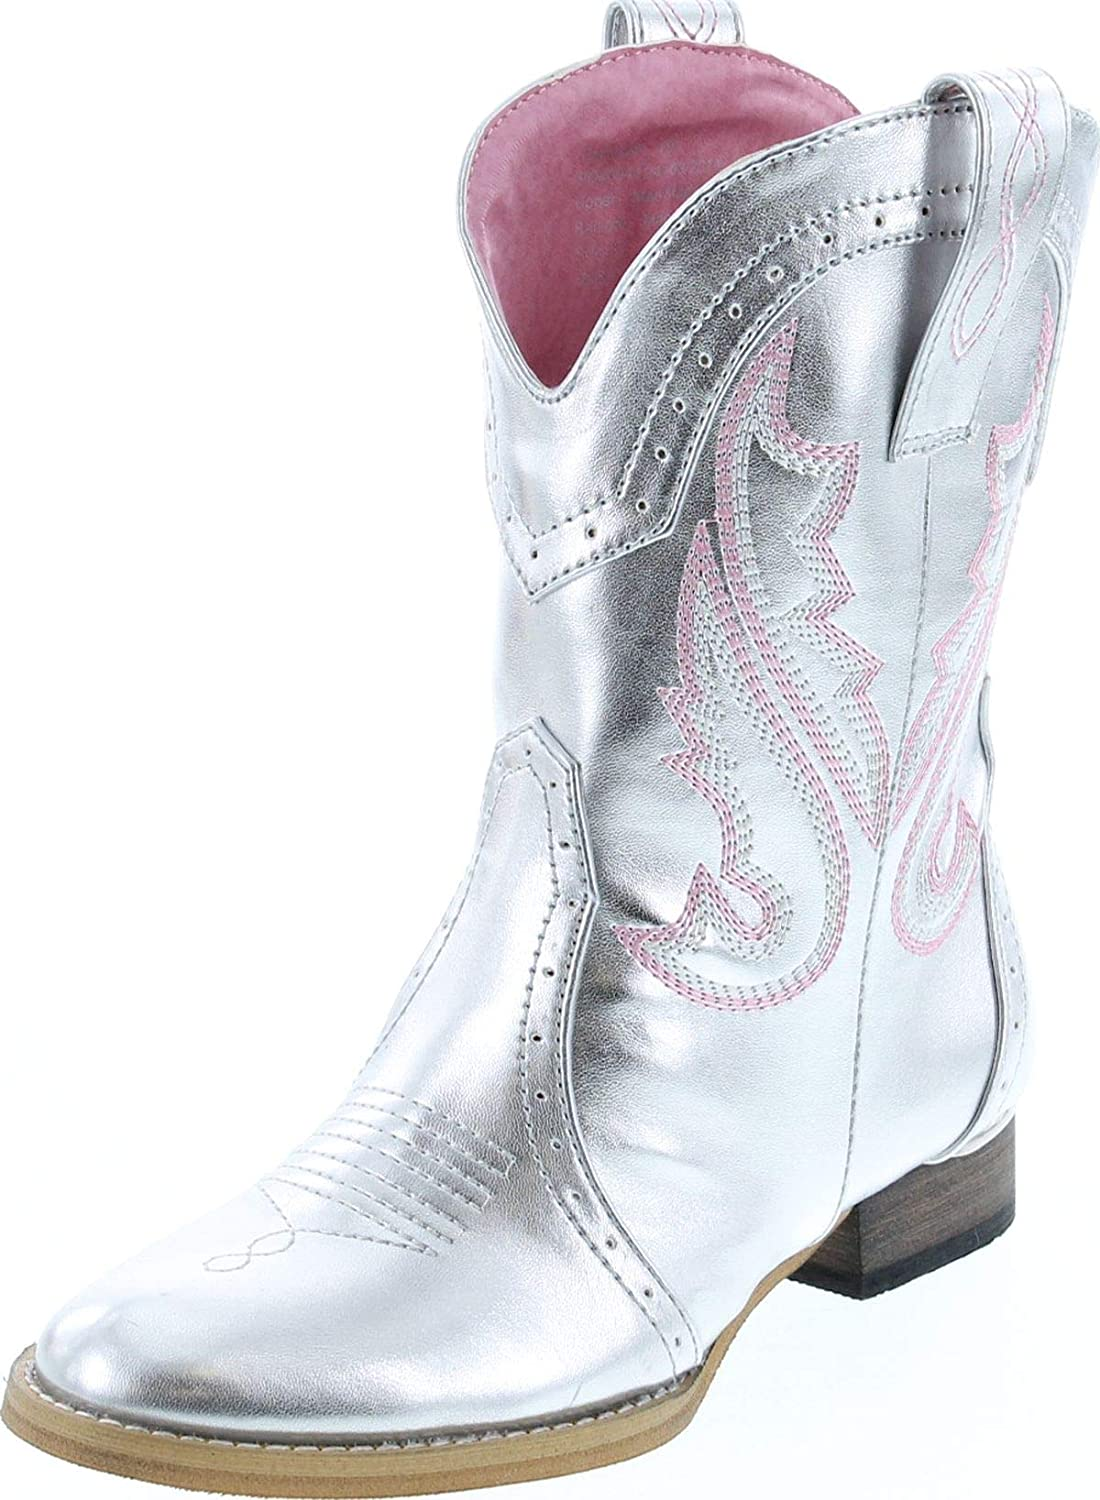 girls silver boots